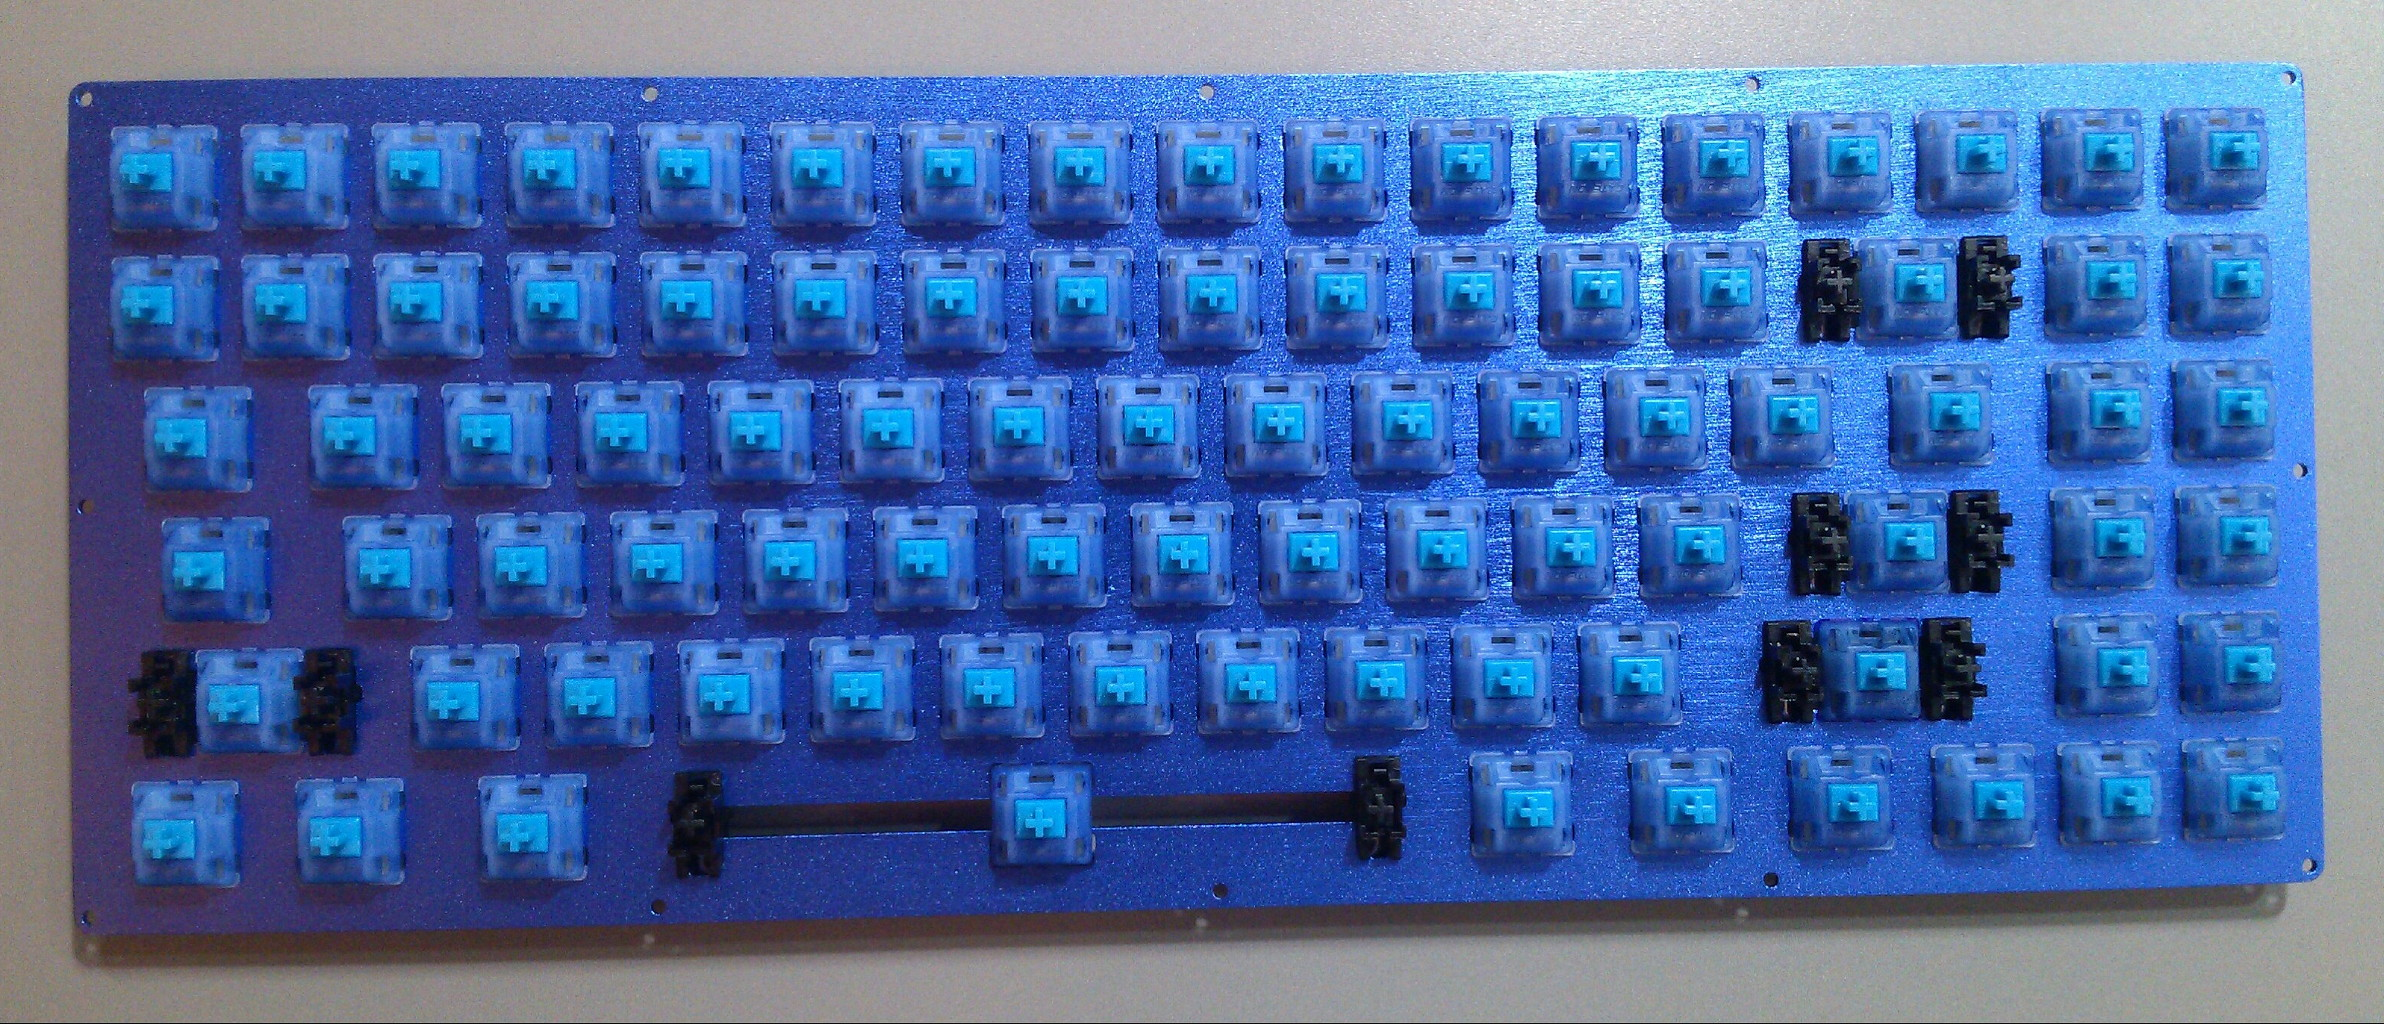 Keyboard75_AllSwitches.jpg